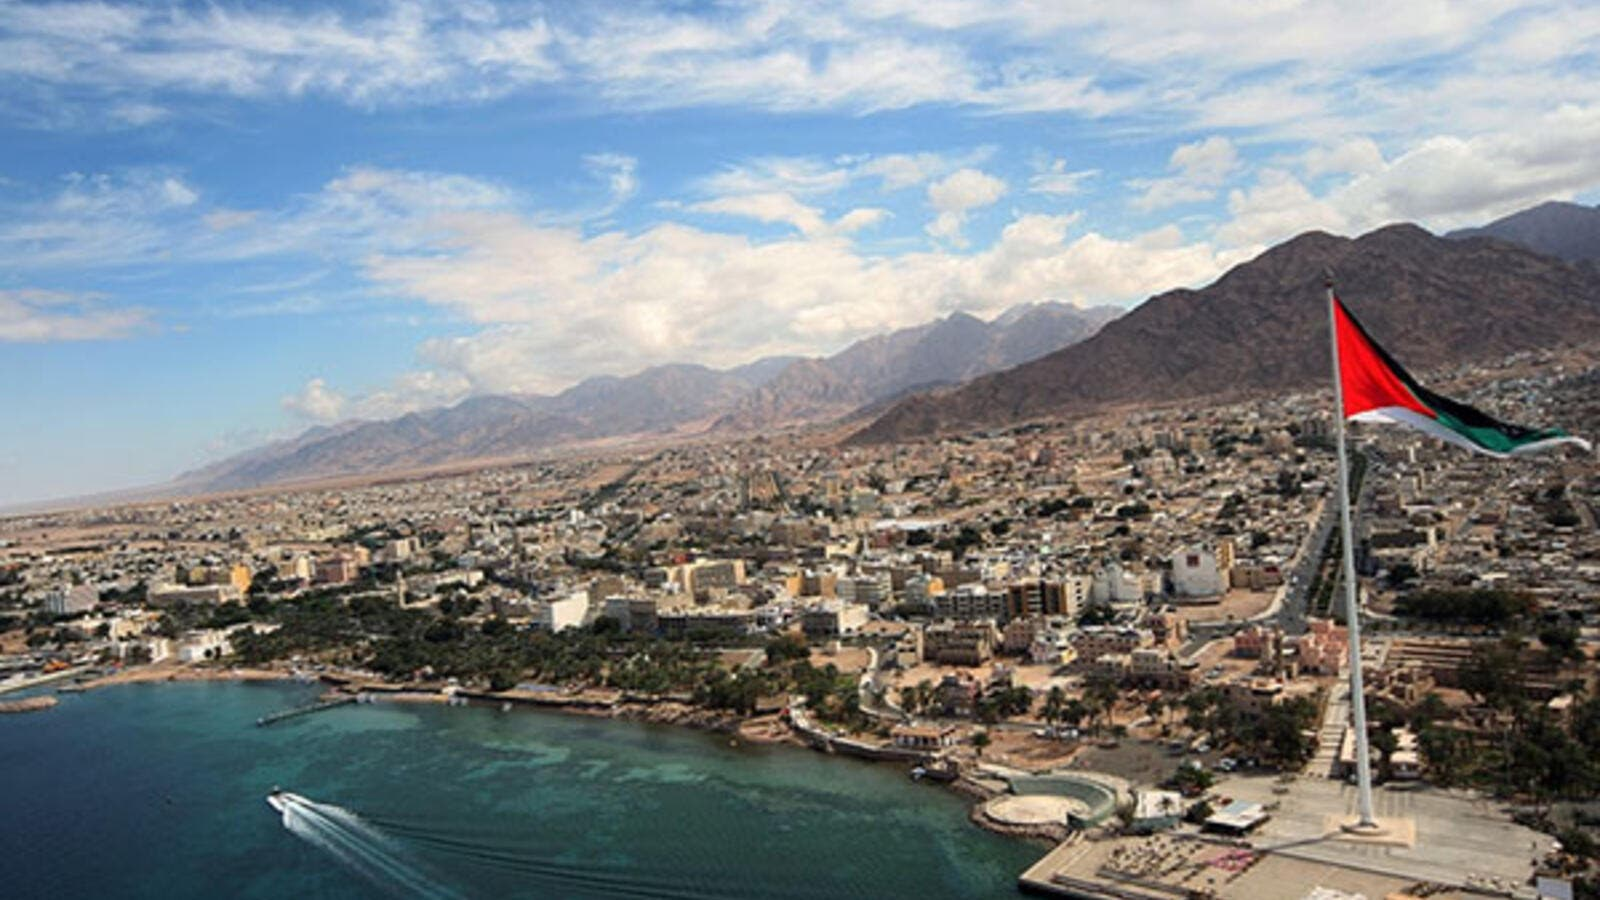 The entertainment complex will be developed by the state-run Aqaba Development Corporation. (File photo)